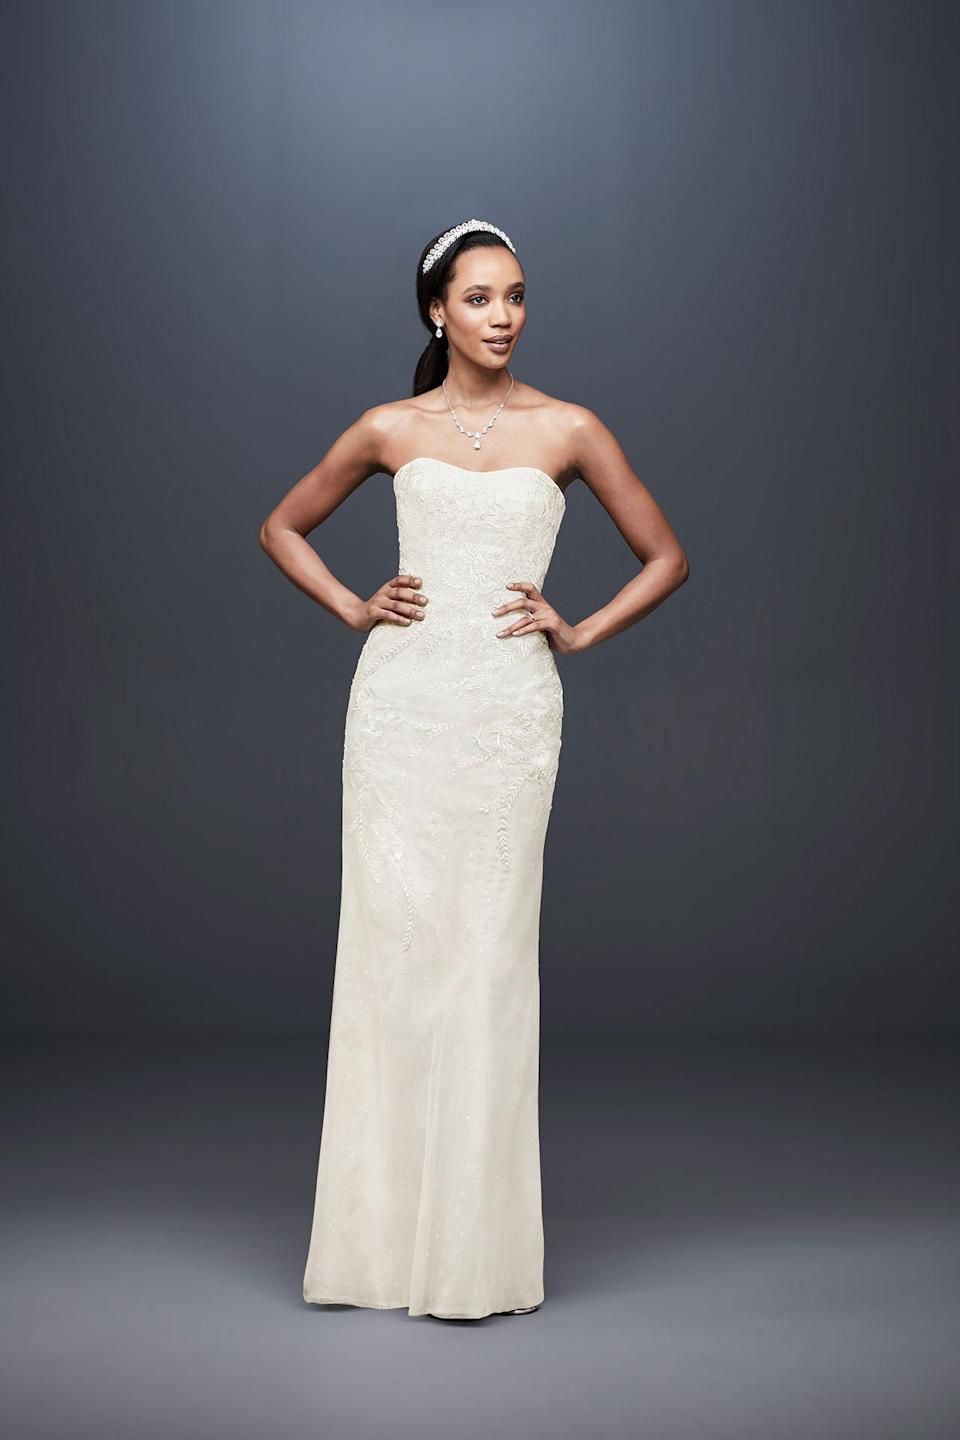 <p>Strapless dress. (Photo: Courtesy of David's Bridal) </p>